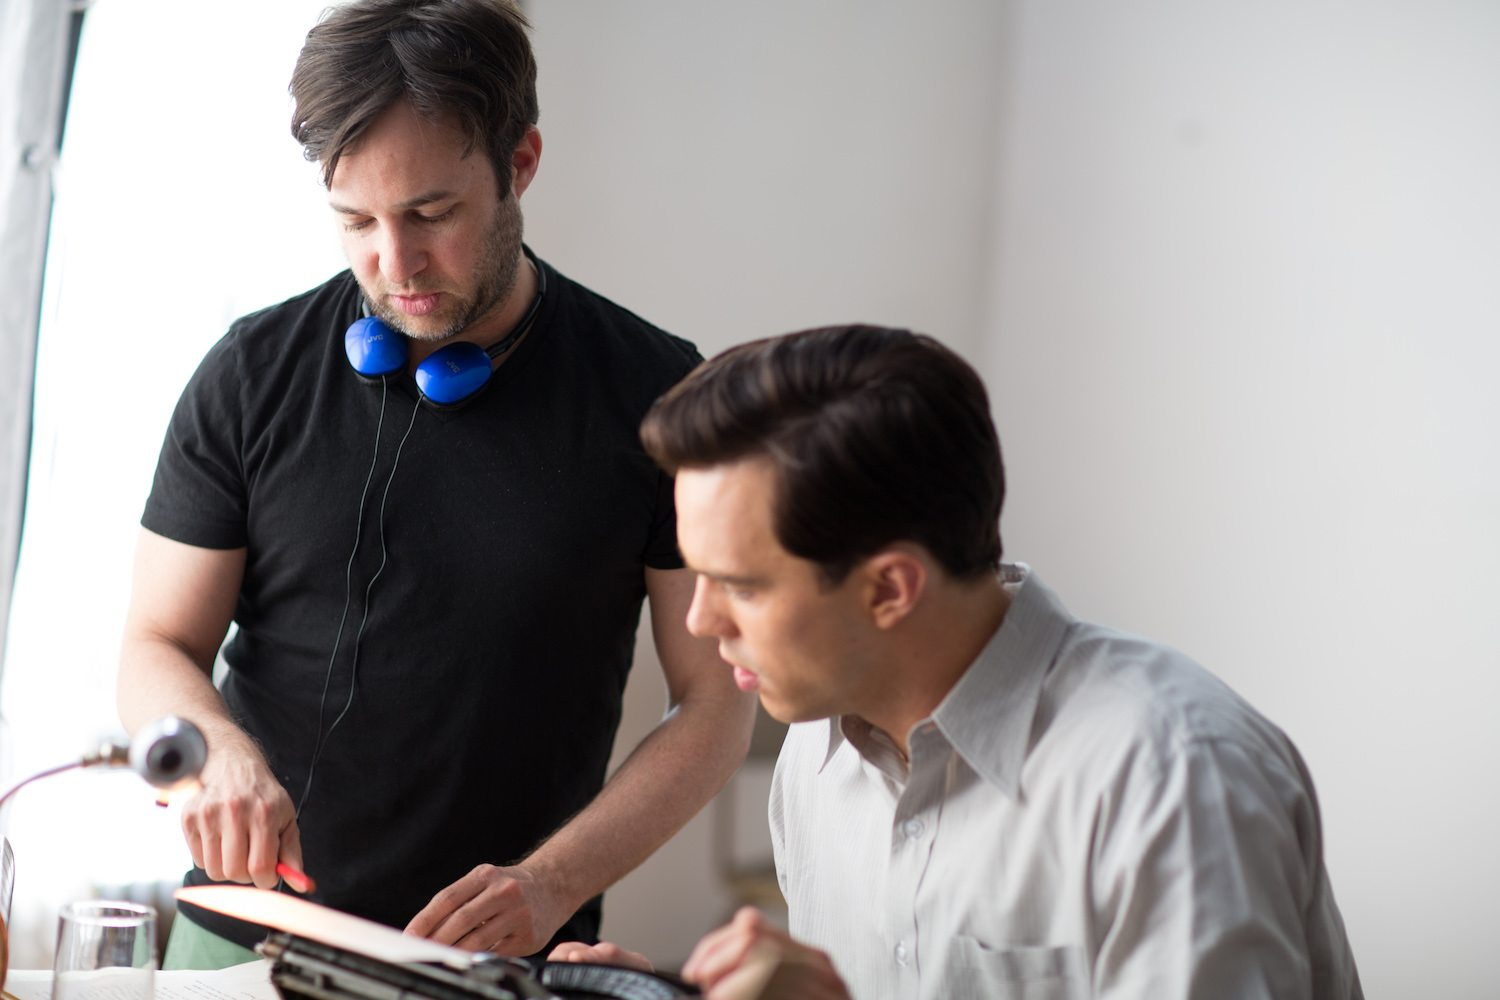 Image Director Danny Strong and Nicholas Hoult as J.D. Salinger in Danny Strong's REBEL IN THE RYE. (Photo: Alison Cohen Rosa. Courtesy of IFC Films.)